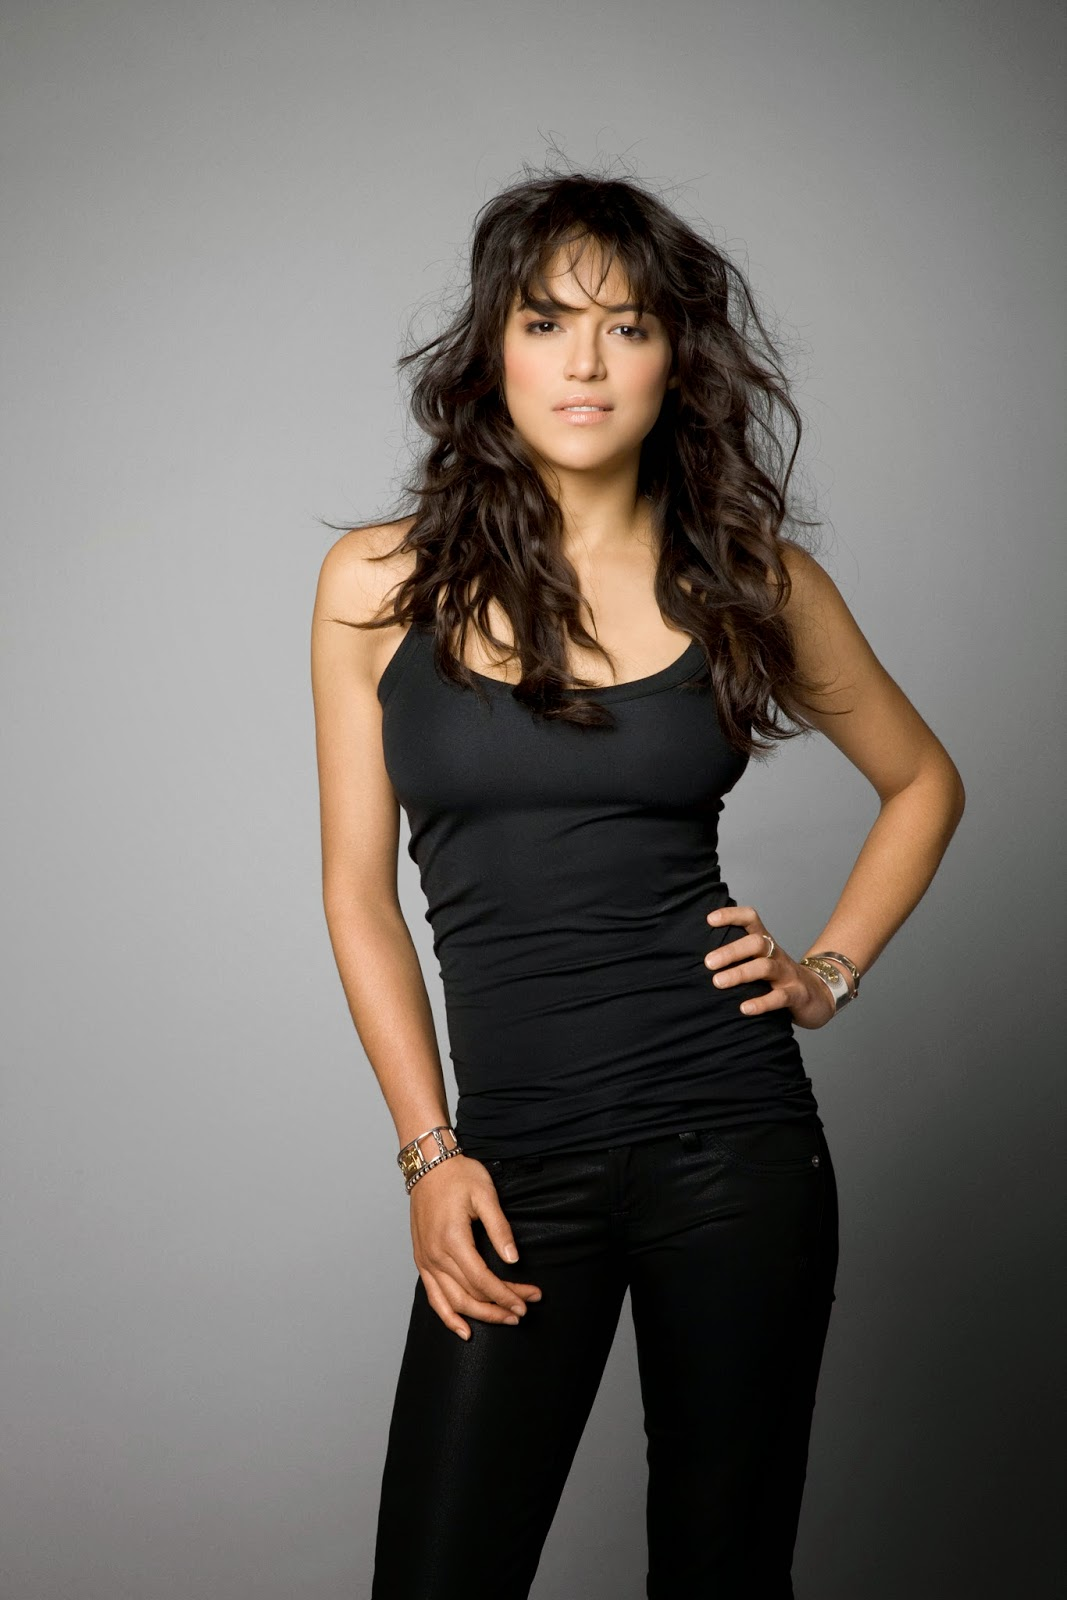 Michelle Rodriguez - Fast and Furious